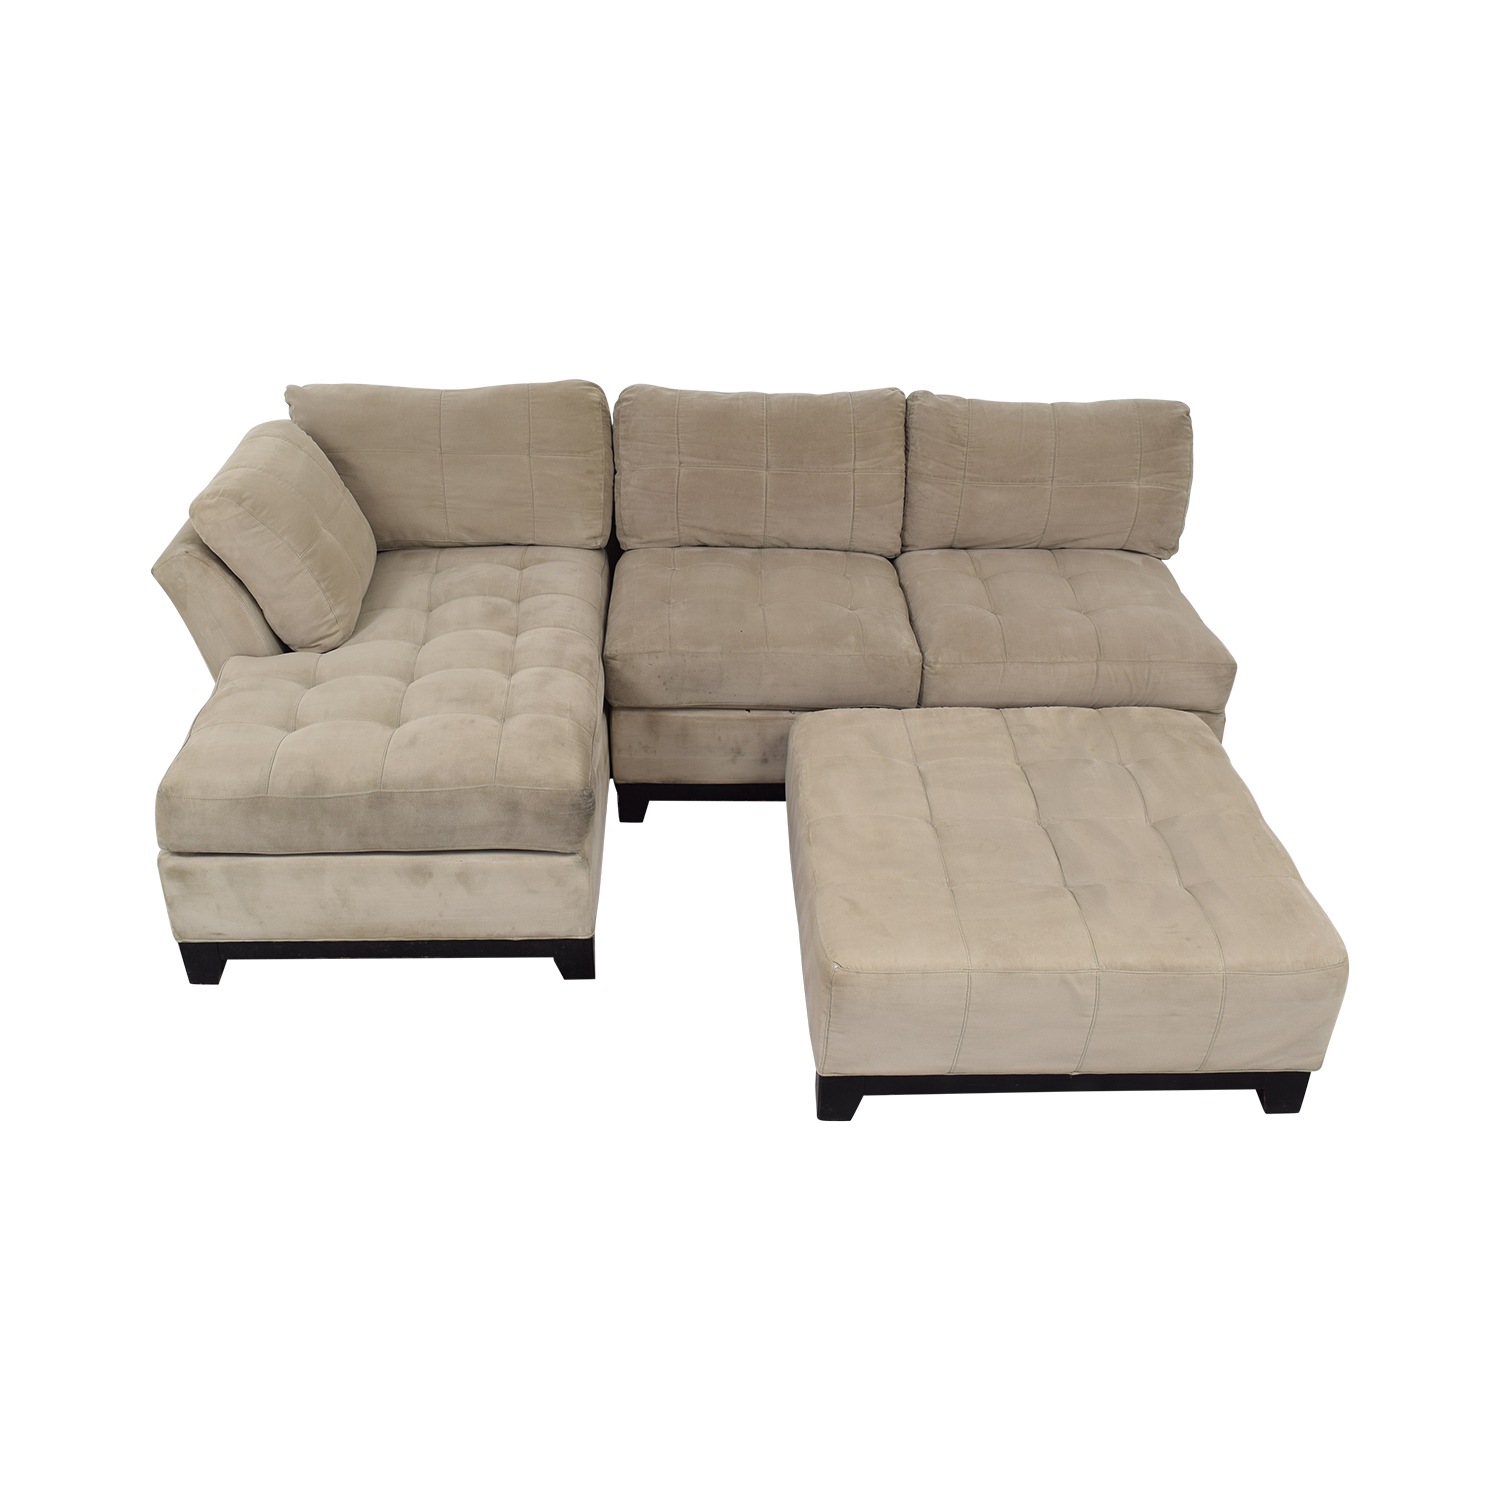 Cindy Crawford Home Cindy Crawford Home Microfiber Sectional with Ottoman dimensions